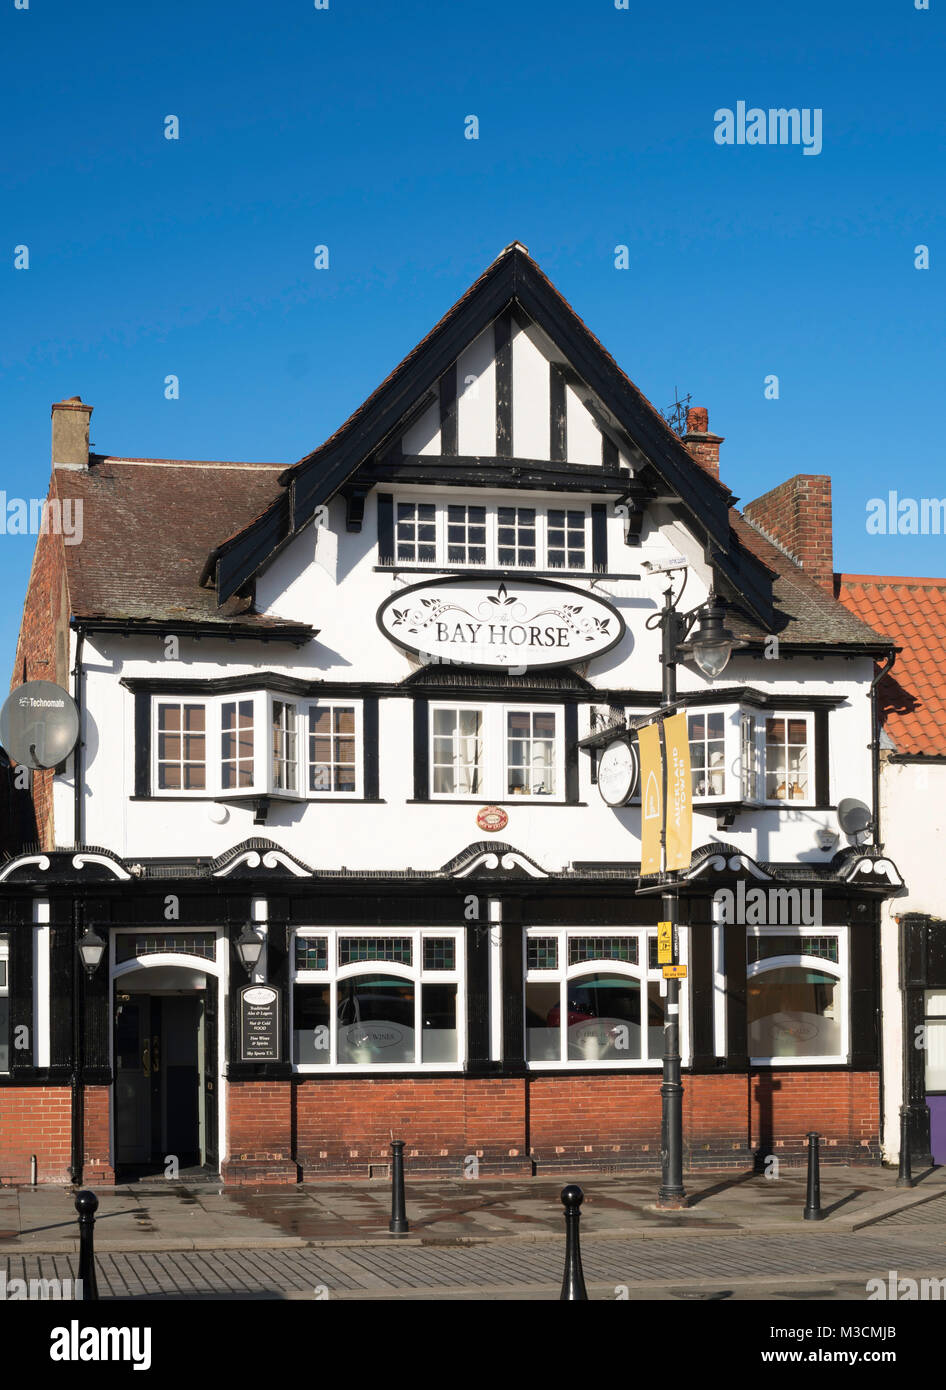 The  Bay Horse Public House, Bishop Auckland, Co. Durham, England, UK - Stock Image